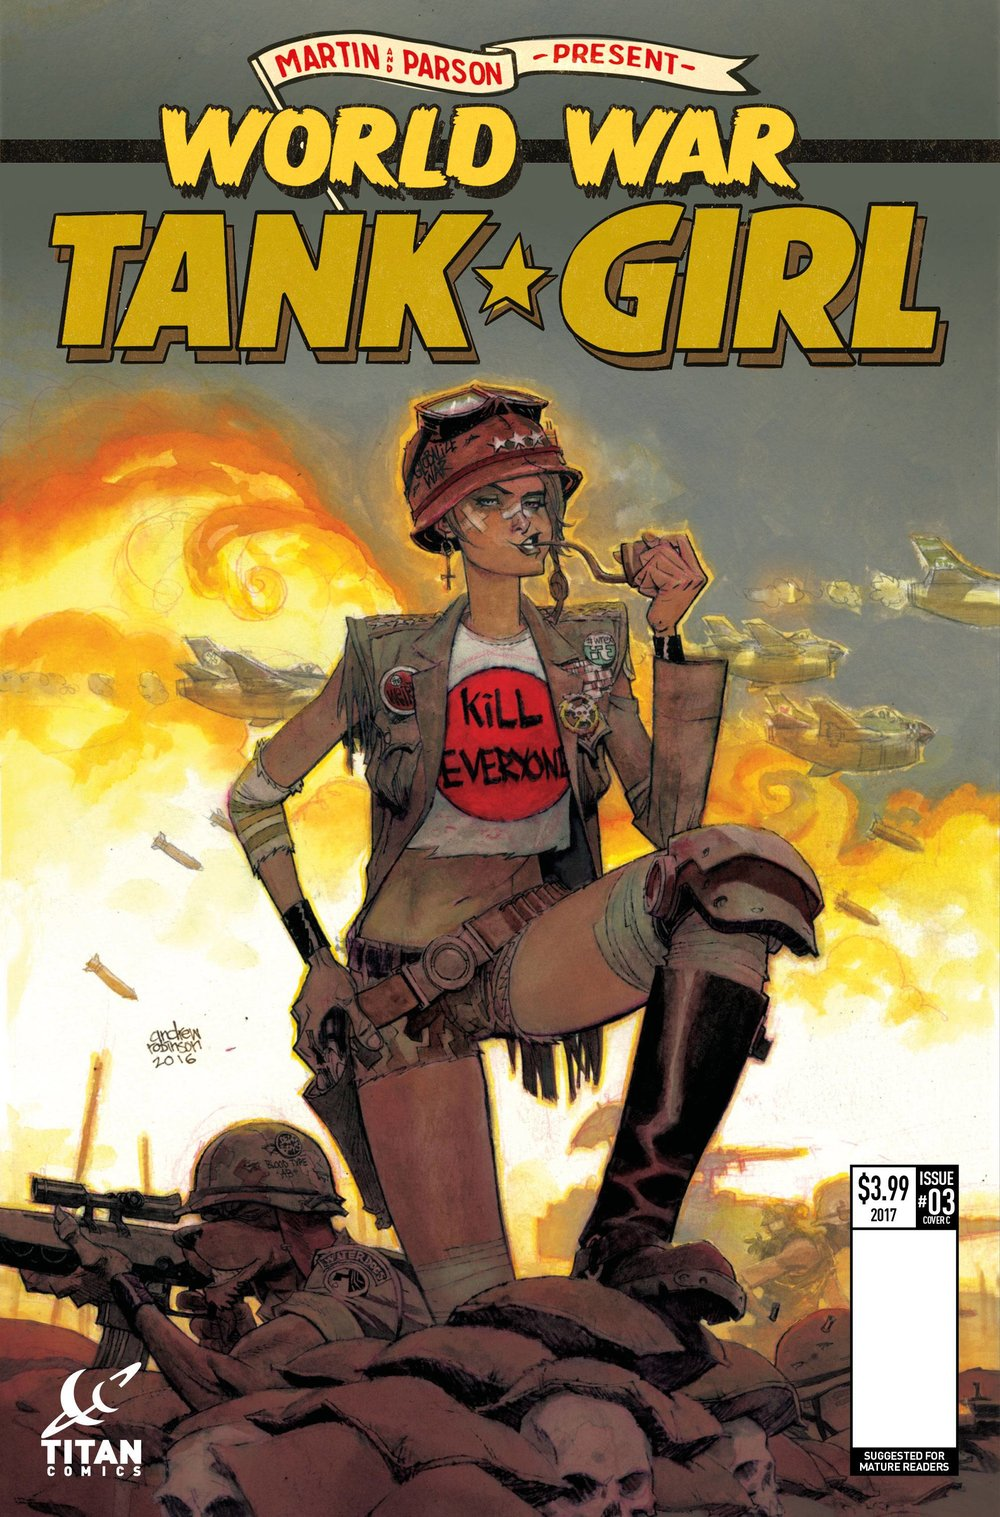 TANK GIRL WORLD WAR TANK GIRL 3 of 4 CVR C ROBINSON.jpg